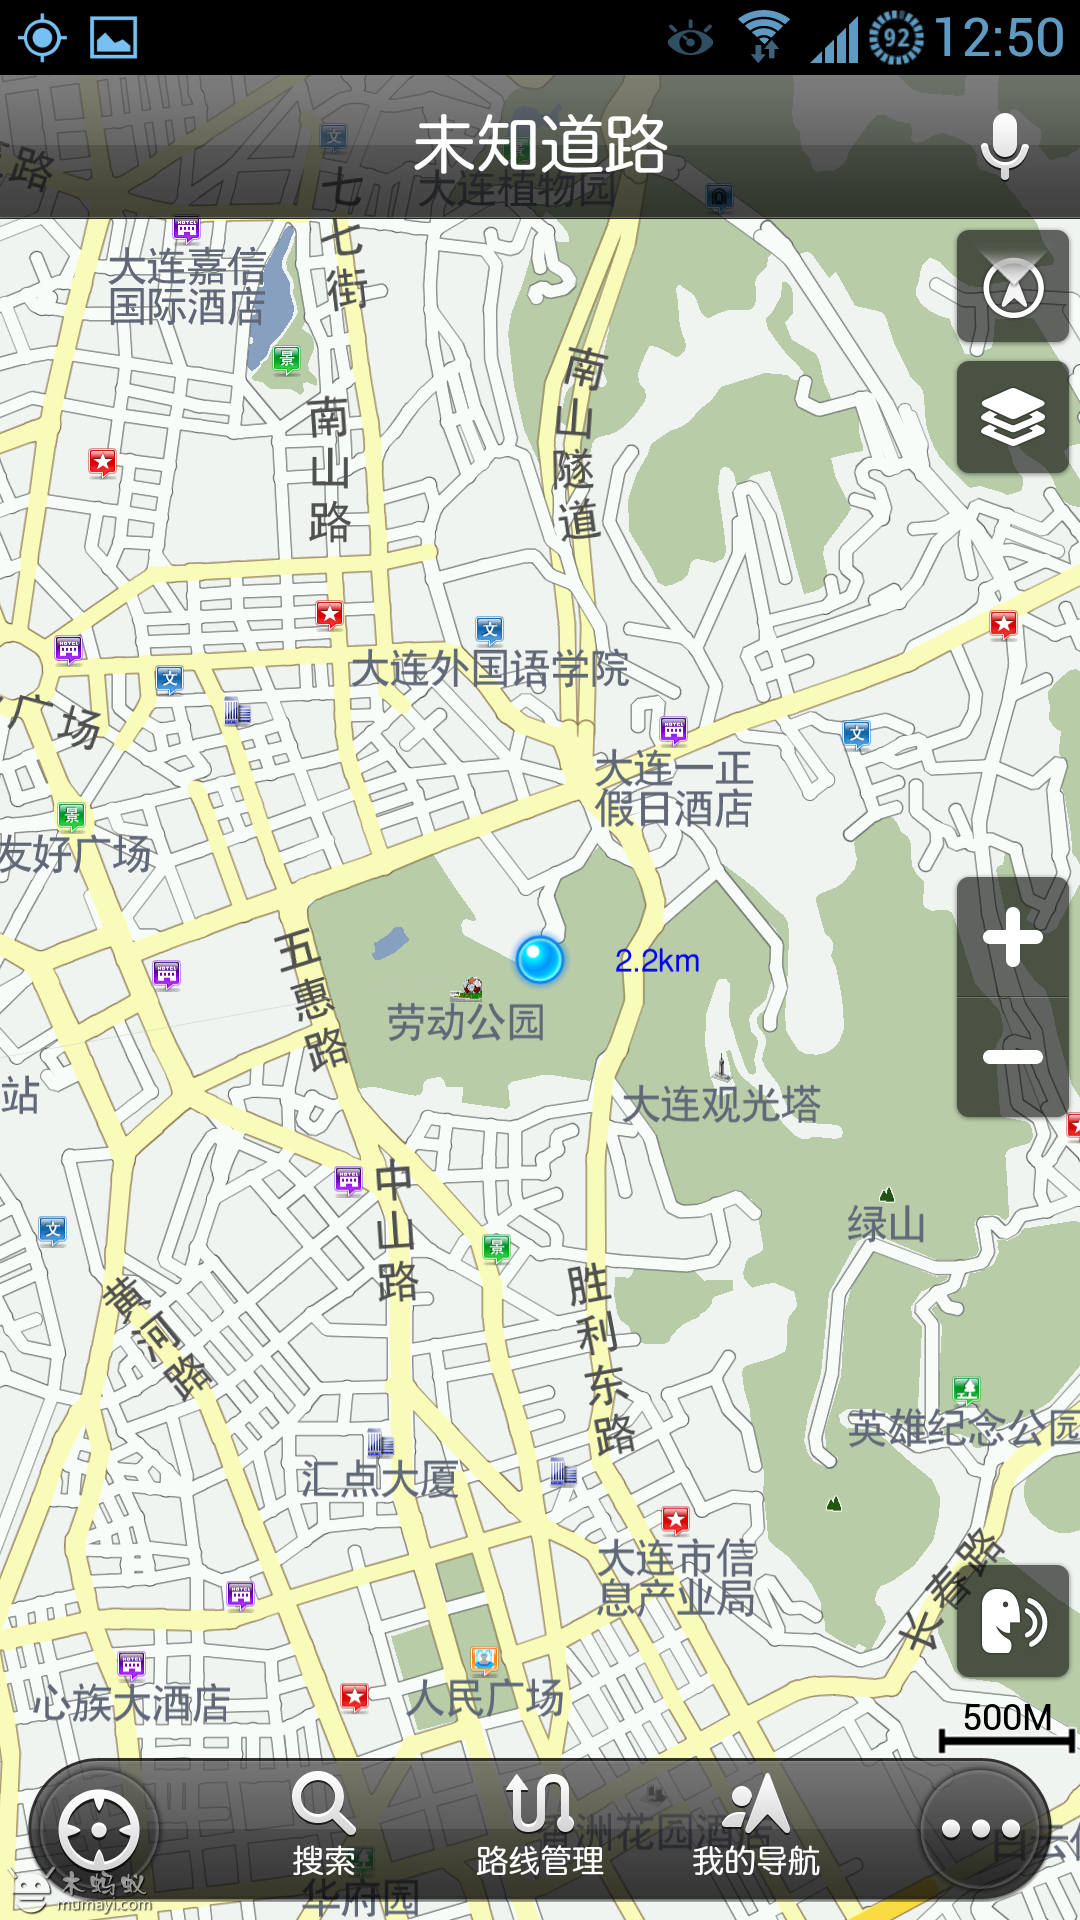 Screenshot_2013-08-10-12-50-51.png